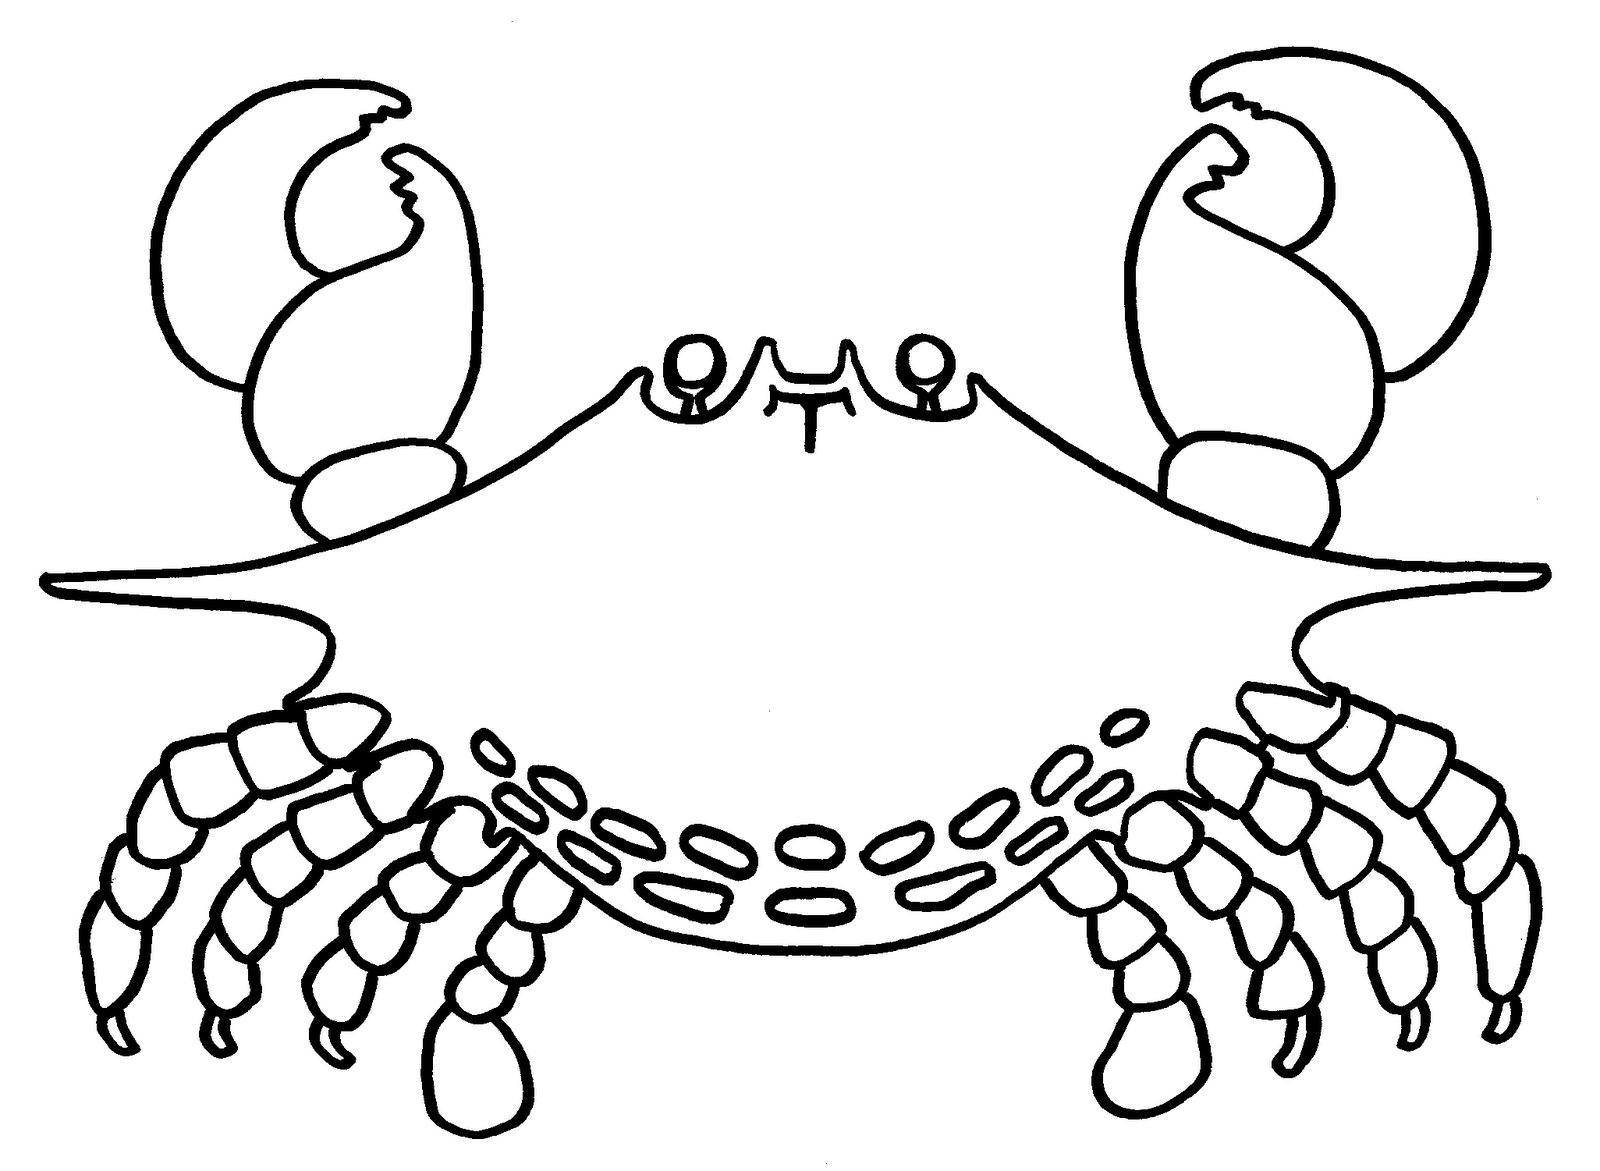 marine animal coloring pages | 17 Marine Animals "|1600|1171|?|f733668b5bb5433edc403c528c86c784|False|UNSURE|0.3058185279369354